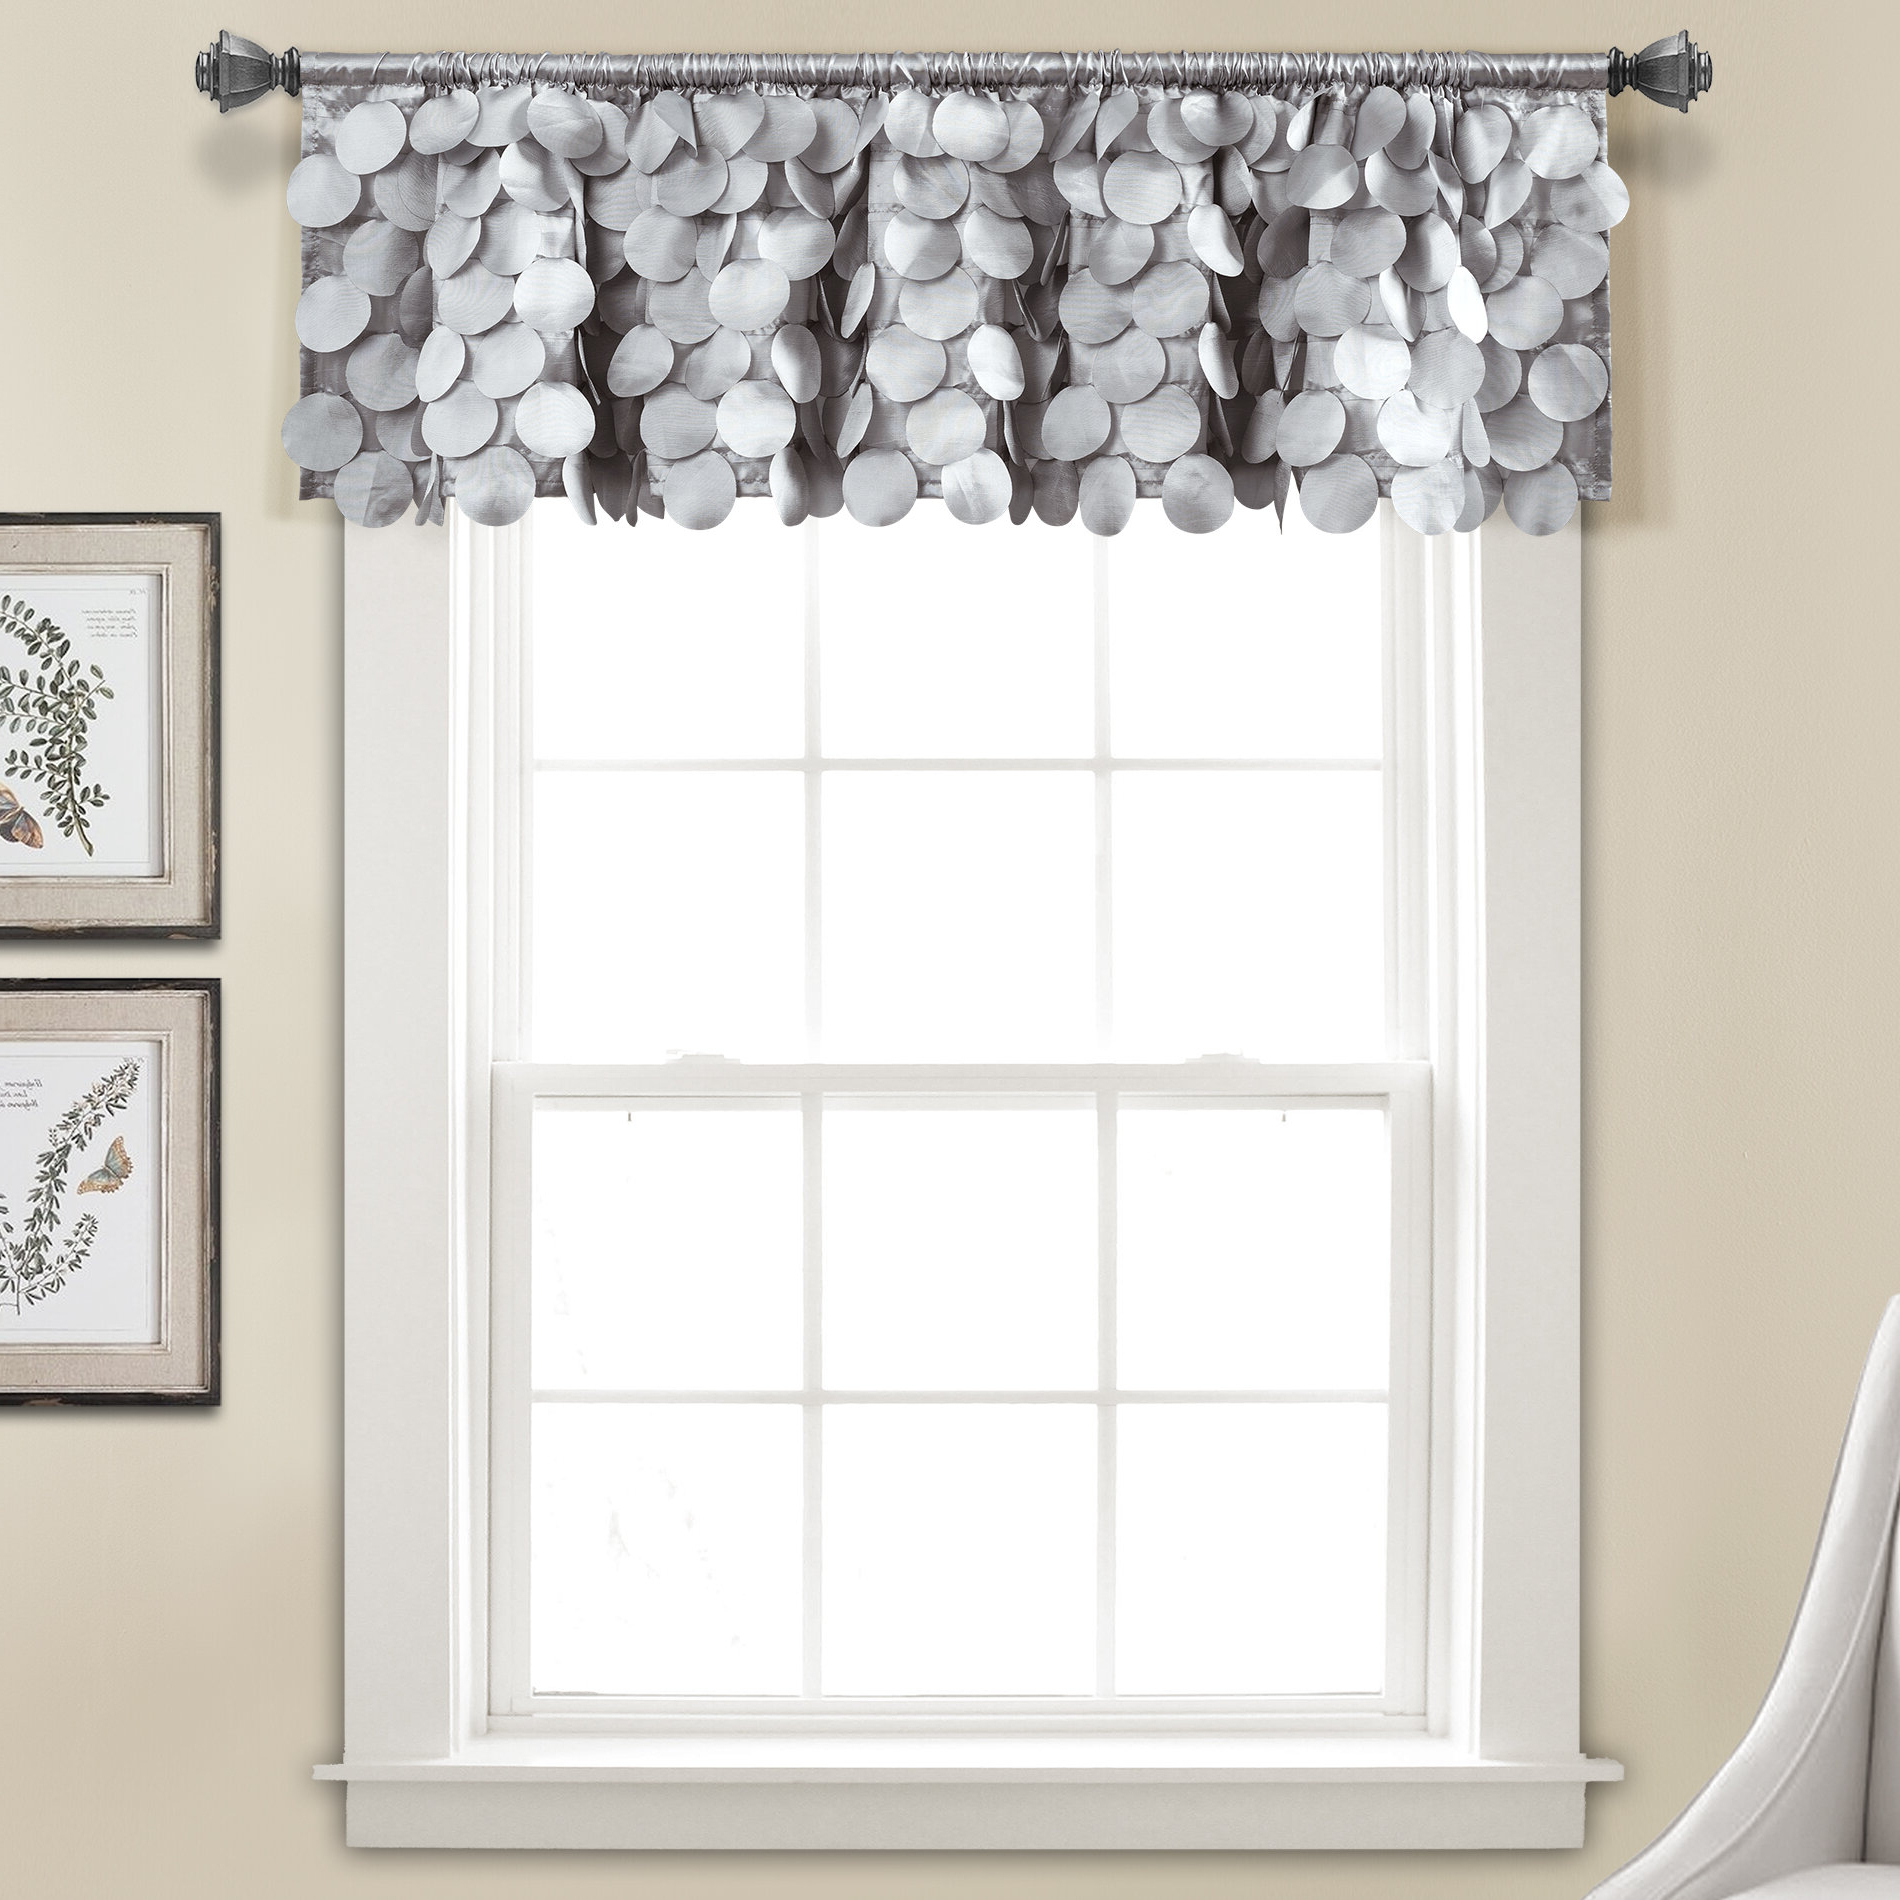 Luxury Light Filtering Straight Curtain Valances Regarding Fashionable Willa Arlo Interiors Willingham Window Valance & Reviews (Gallery 9 of 20)